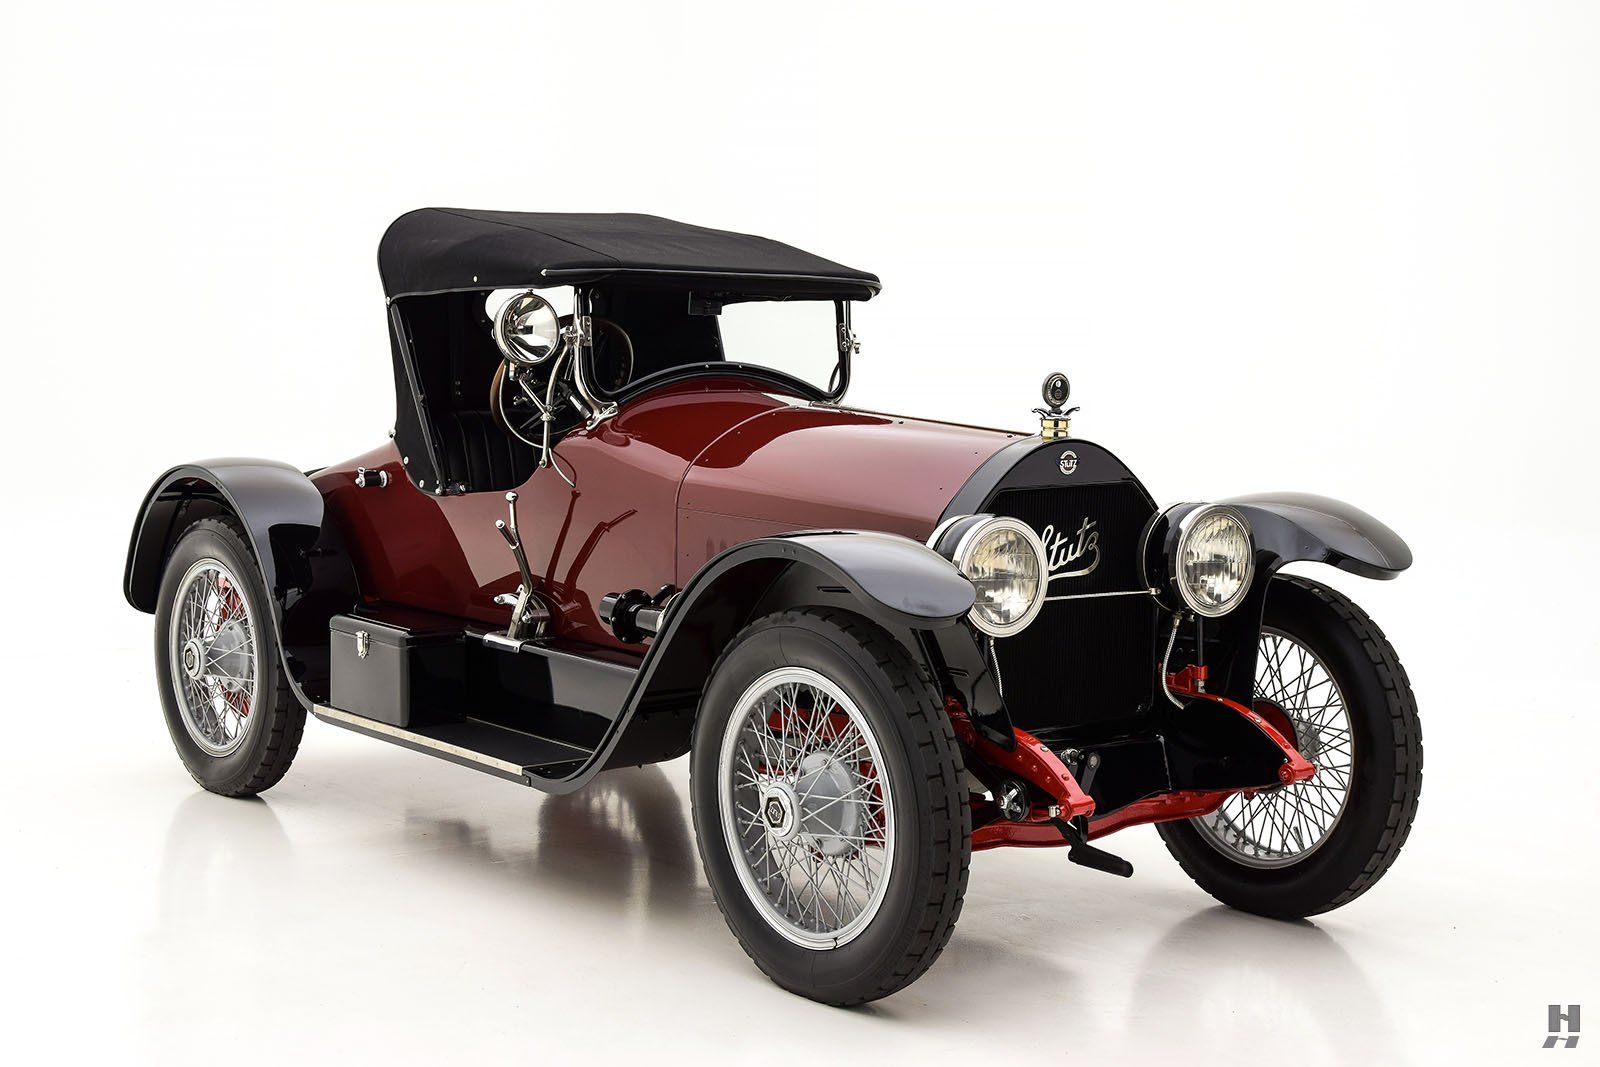 1920 Stutz Bearcat | Writing Reference | Pinterest | Cars, Vehicle ...